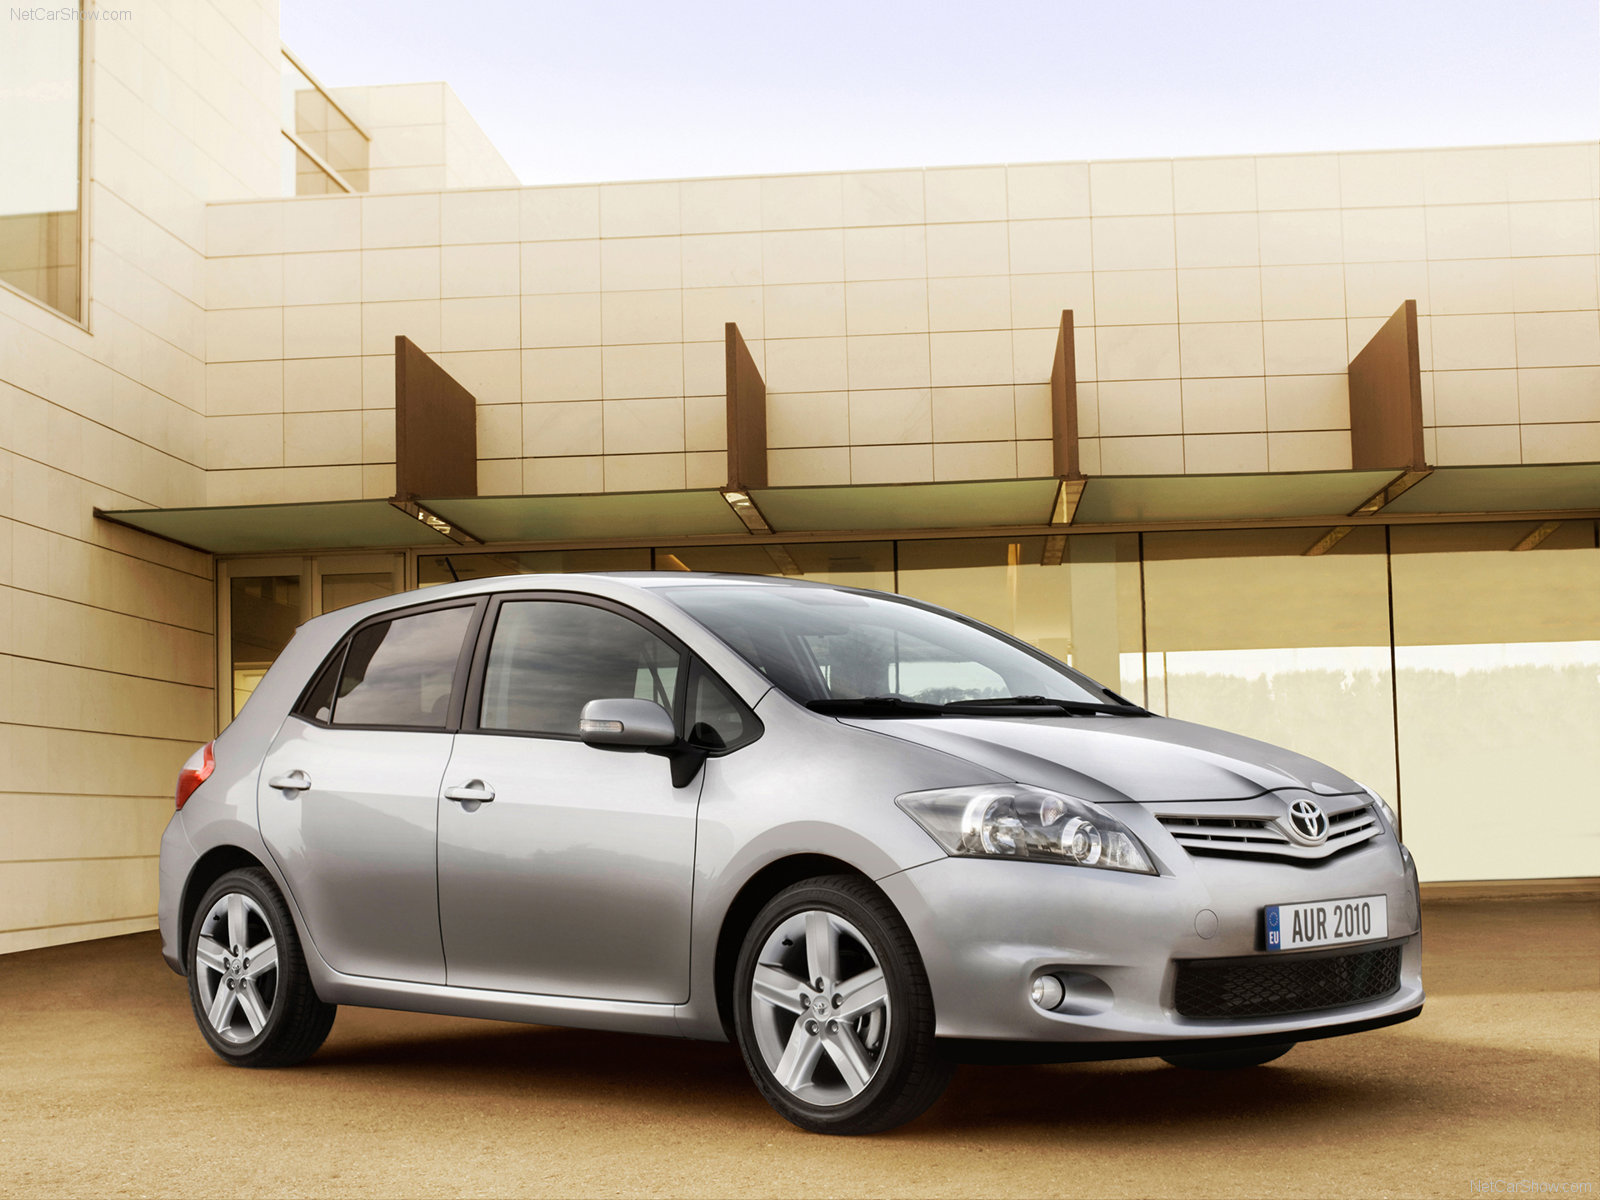 2010 car models 2010 car models 2010 toyota auris. Black Bedroom Furniture Sets. Home Design Ideas